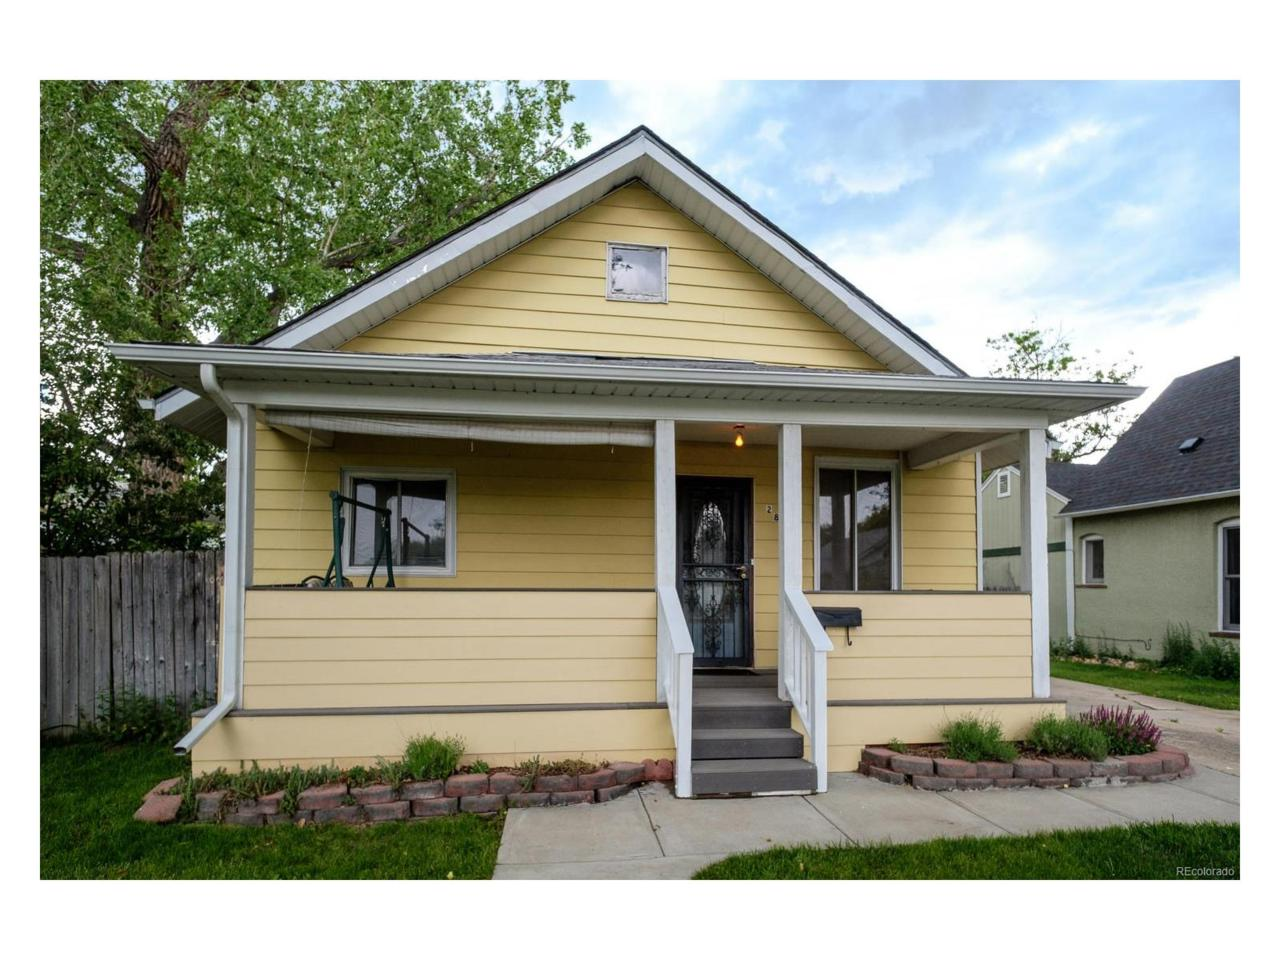 2828 S Lincoln Street, Englewood, CO 80113 (MLS #2660205) :: 8z Real Estate